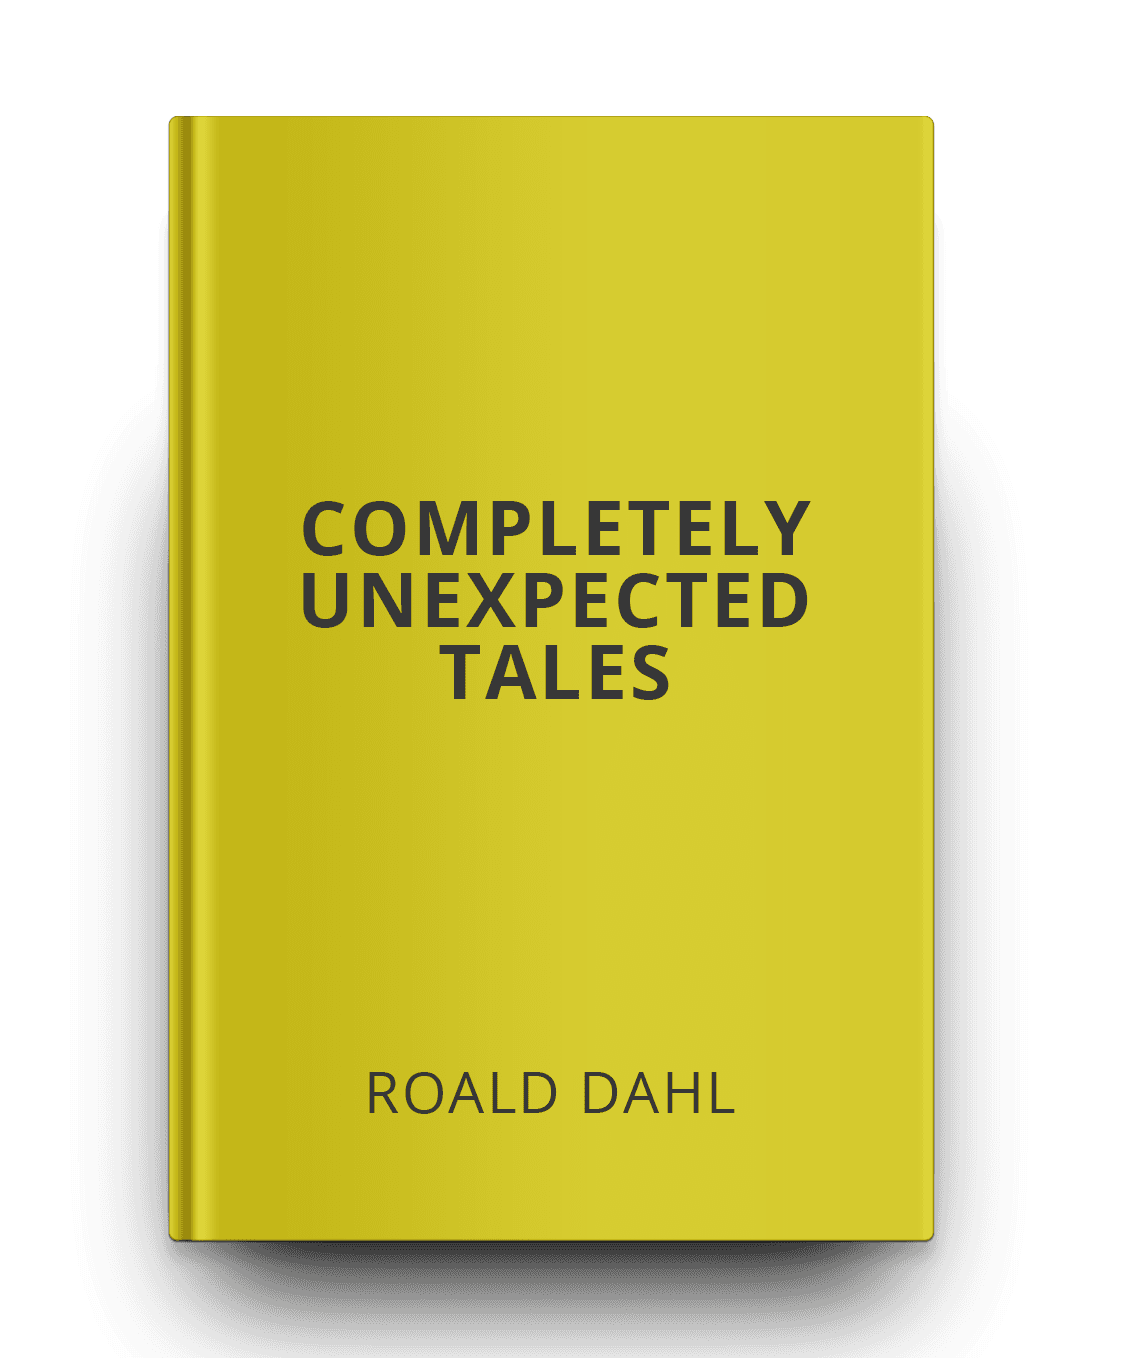 completely-unexpected-tales